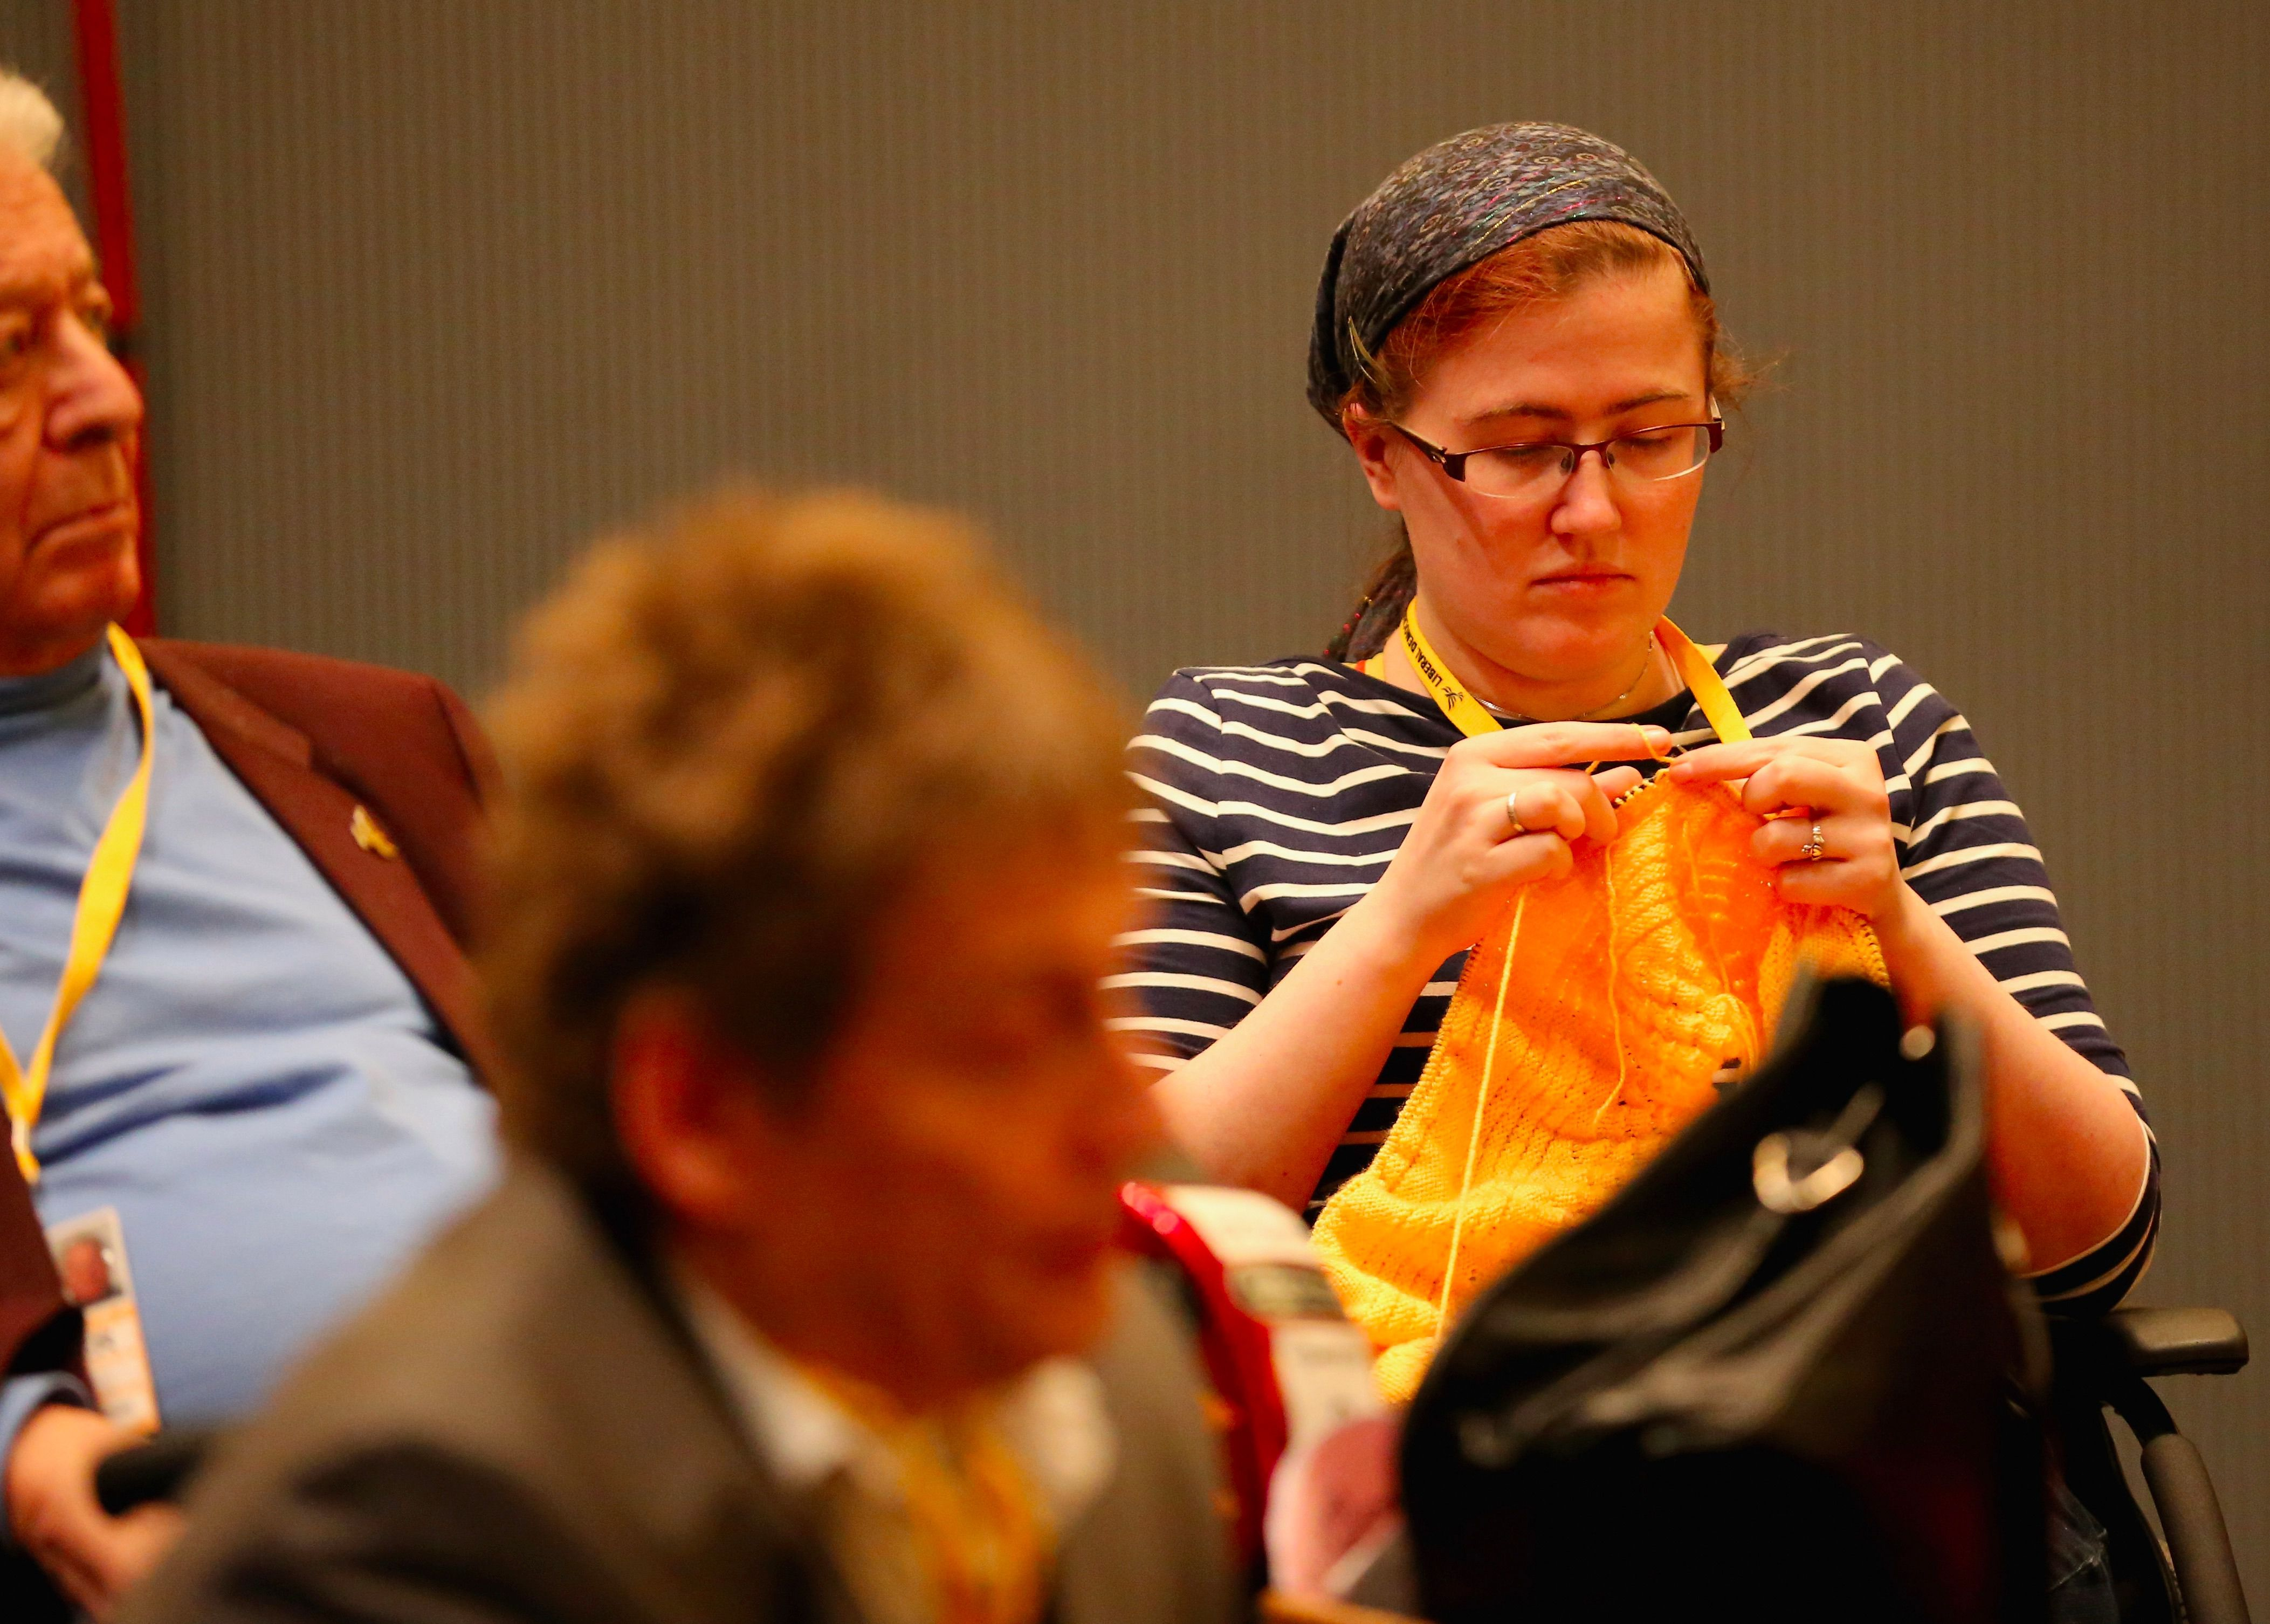 A woman knits at the Liberal Democrat Spring Conference in Liverpool, England.